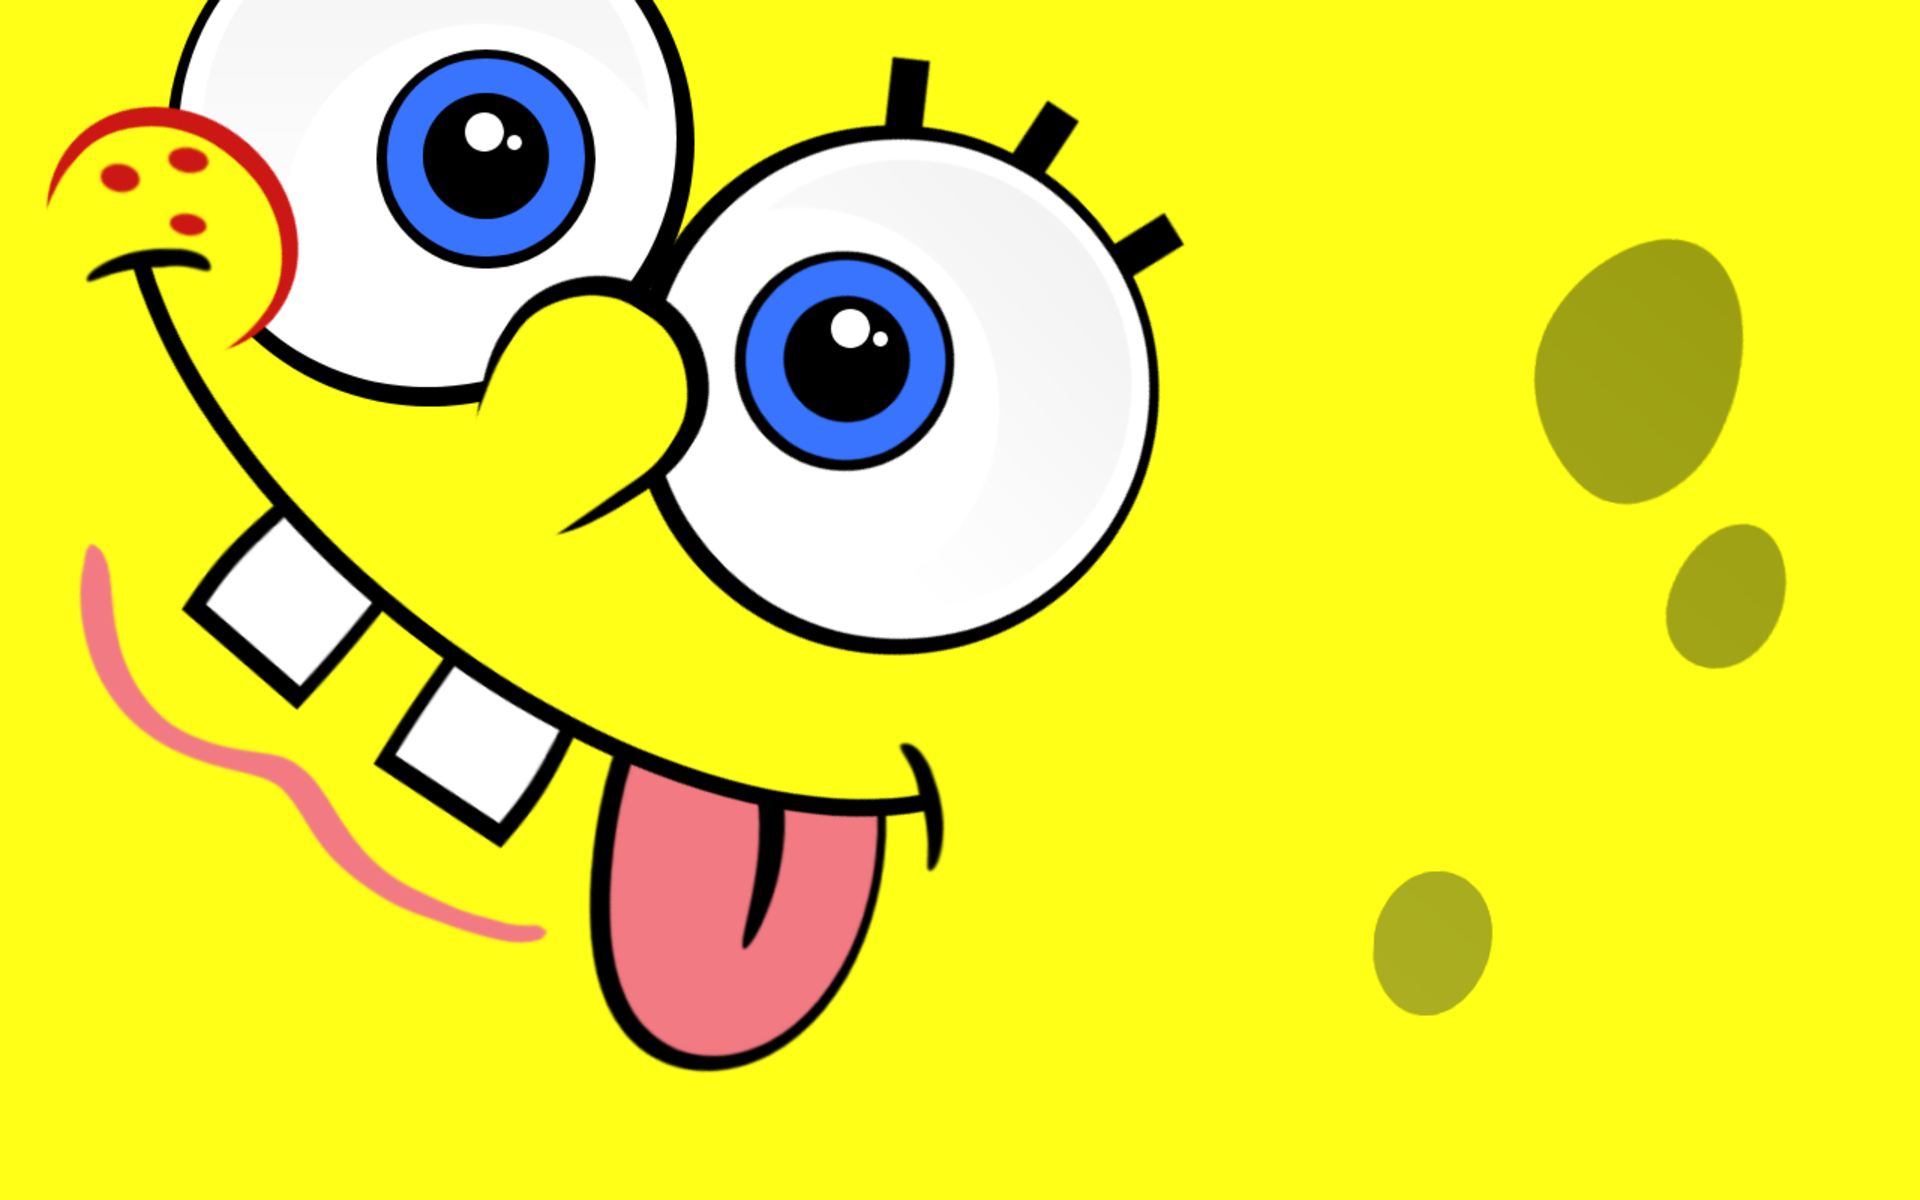 ... Wallpaper Spongebob Squarepants Funny Face Spongebob Squarepants Funny ...